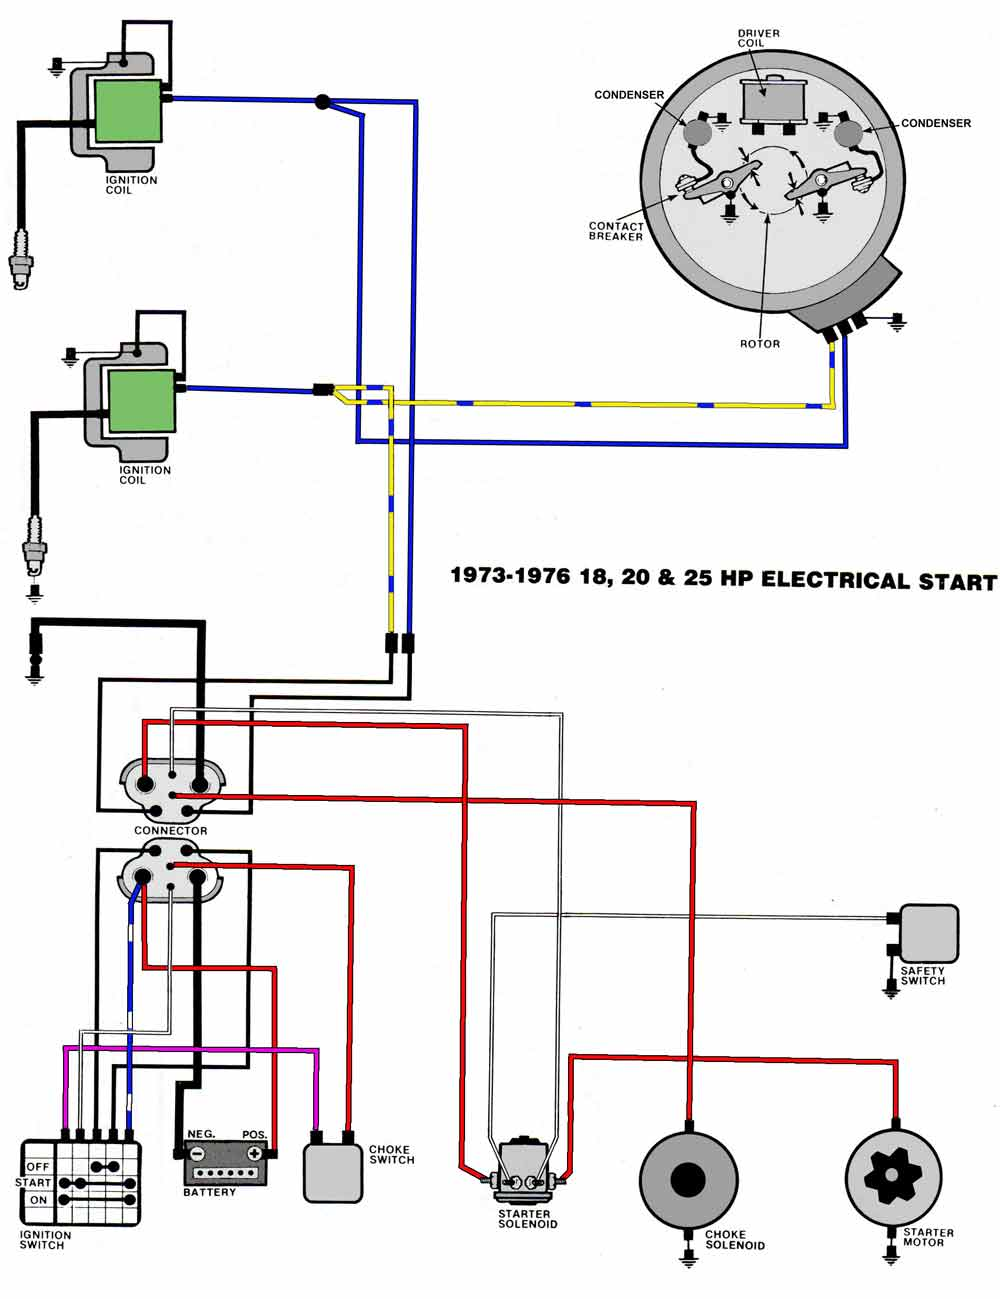 Ignition switch wiring diagram yamaha hp outboard